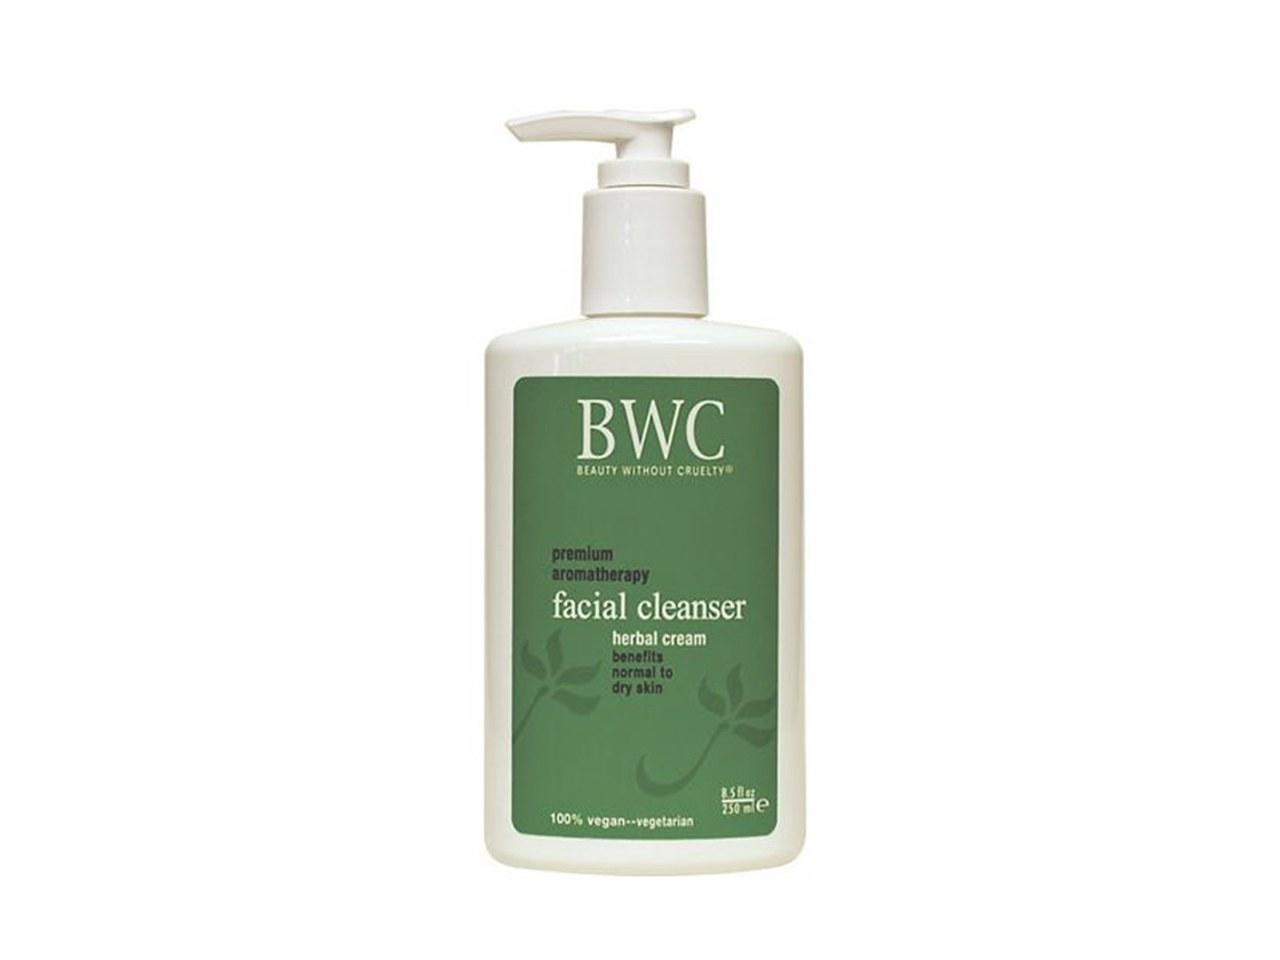 """<p>""""This <a rel=""""nofollow"""" href=""""https://www.self.com/gallery/best-makeup-removers?mbid=synd_yahoo_rss"""">cleanser</a> feels like a light moisturizer, and takes off your makeup with no problem—I love its natural herbal smell."""" —Emily Abrams, 26</p> <p><strong>Buy it:</strong> $7, <a rel=""""nofollow"""" href=""""https://www.amazon.com/Beauty-Without-Cruelty-Herbal-Cleanser/dp/B00015XAQA"""" rel=""""nofollow"""">amazon.com</a></p>"""